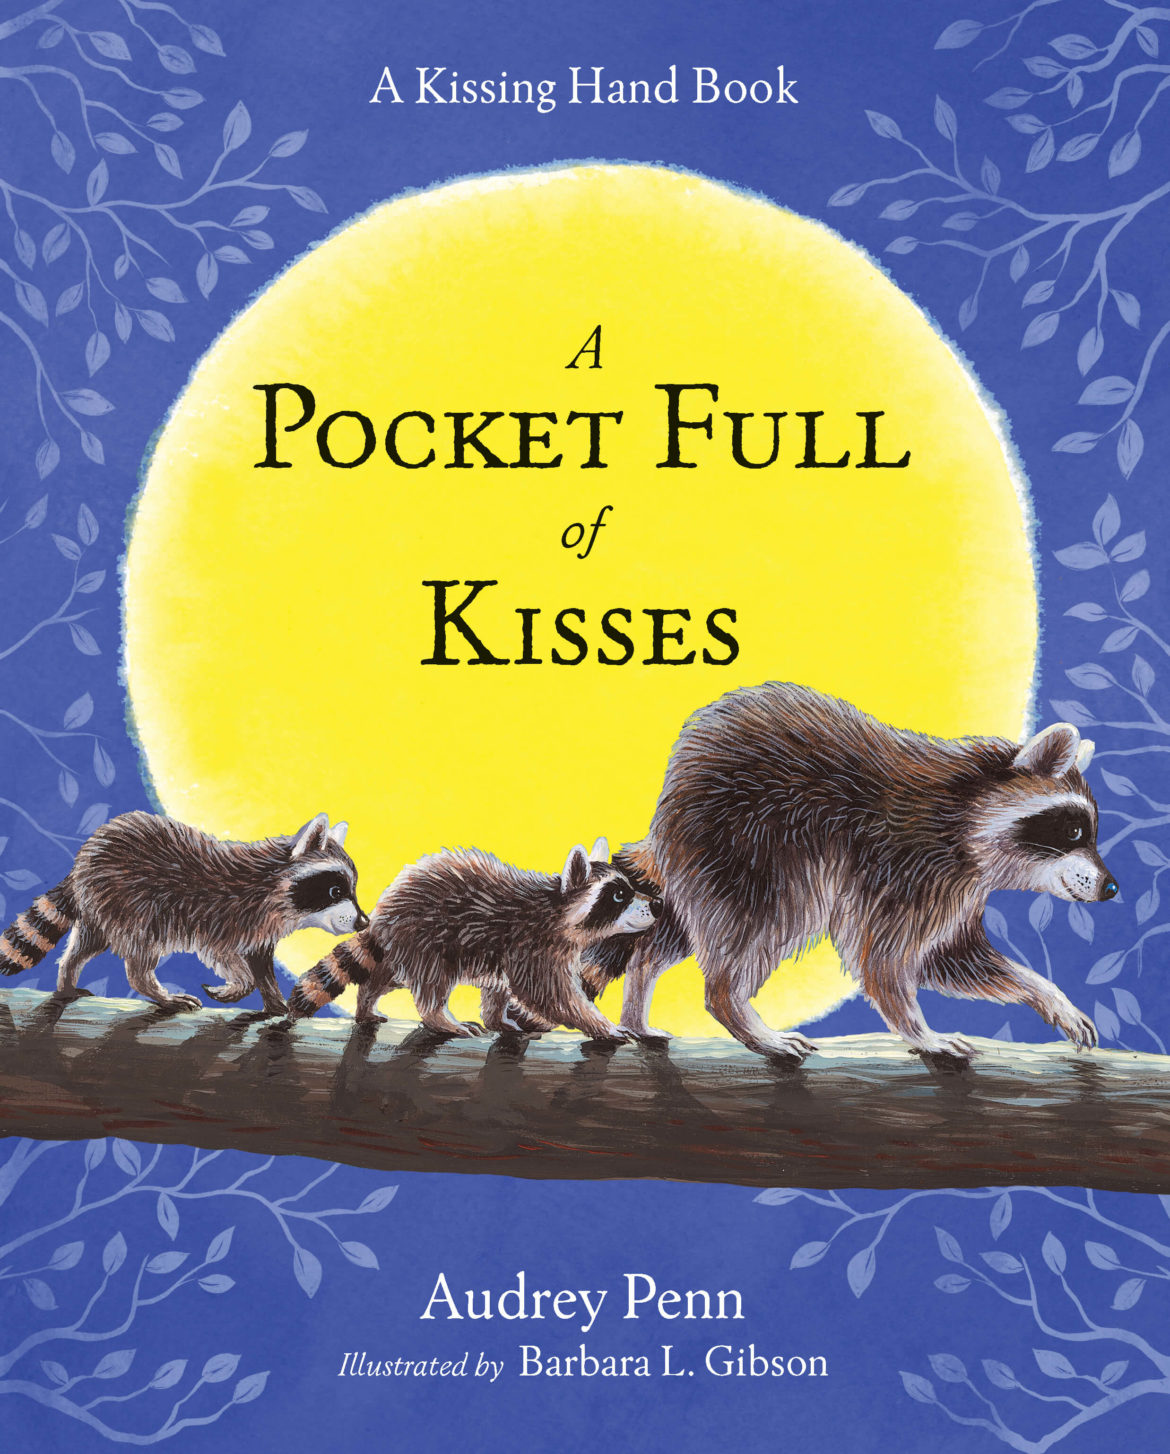 A Pocket Full of Kisses 2016 Book Cover